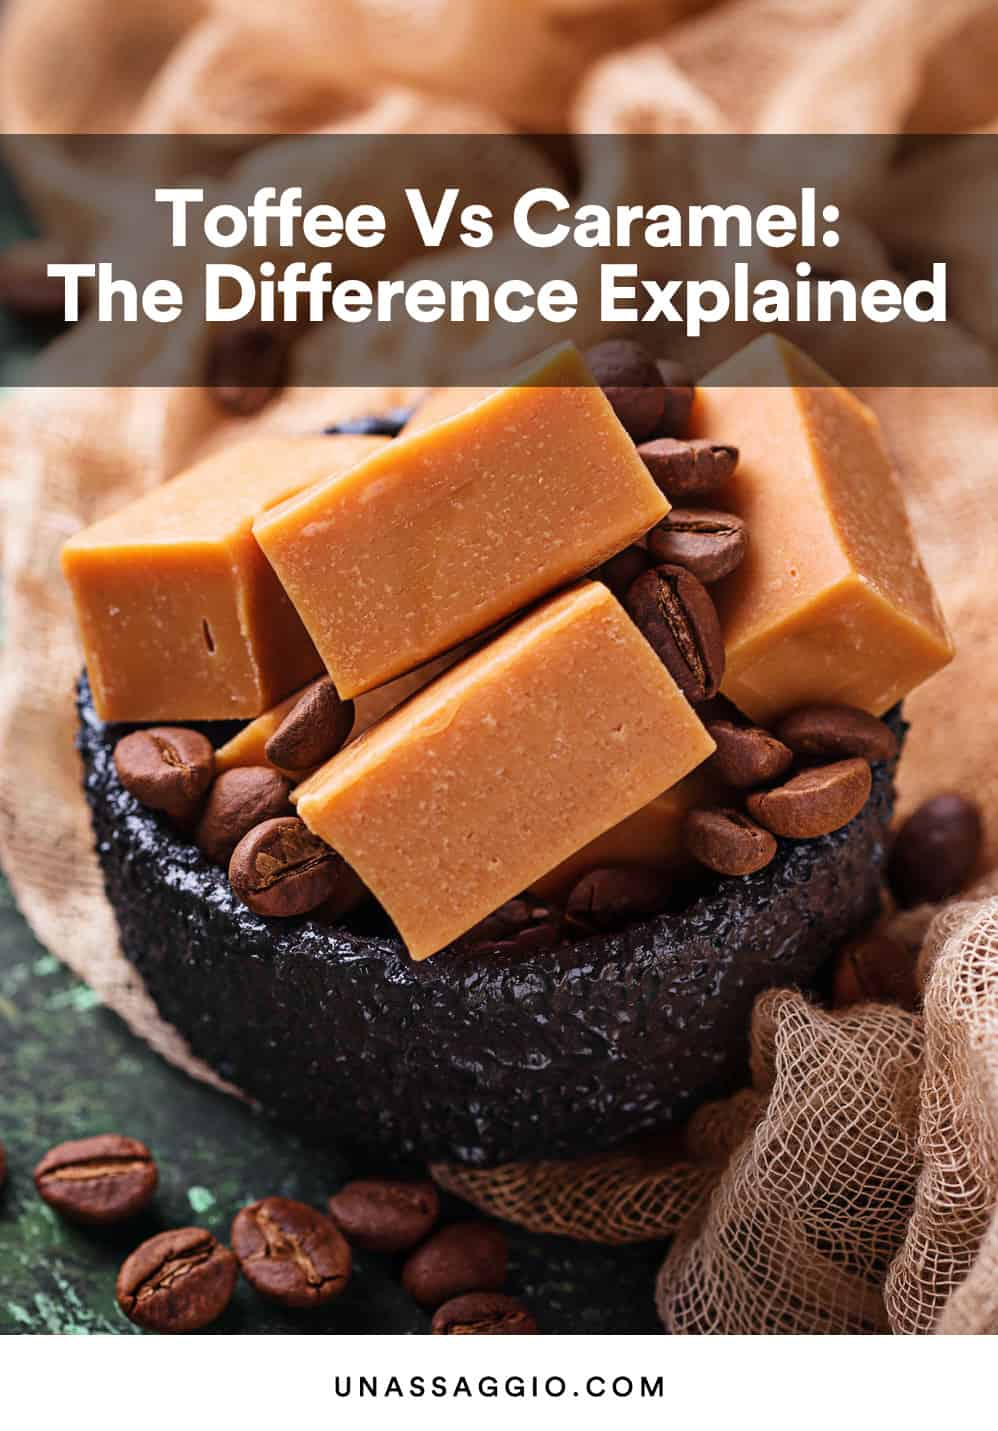 Toffee Vs Caramel: Difference, Similarities, Health Benefits